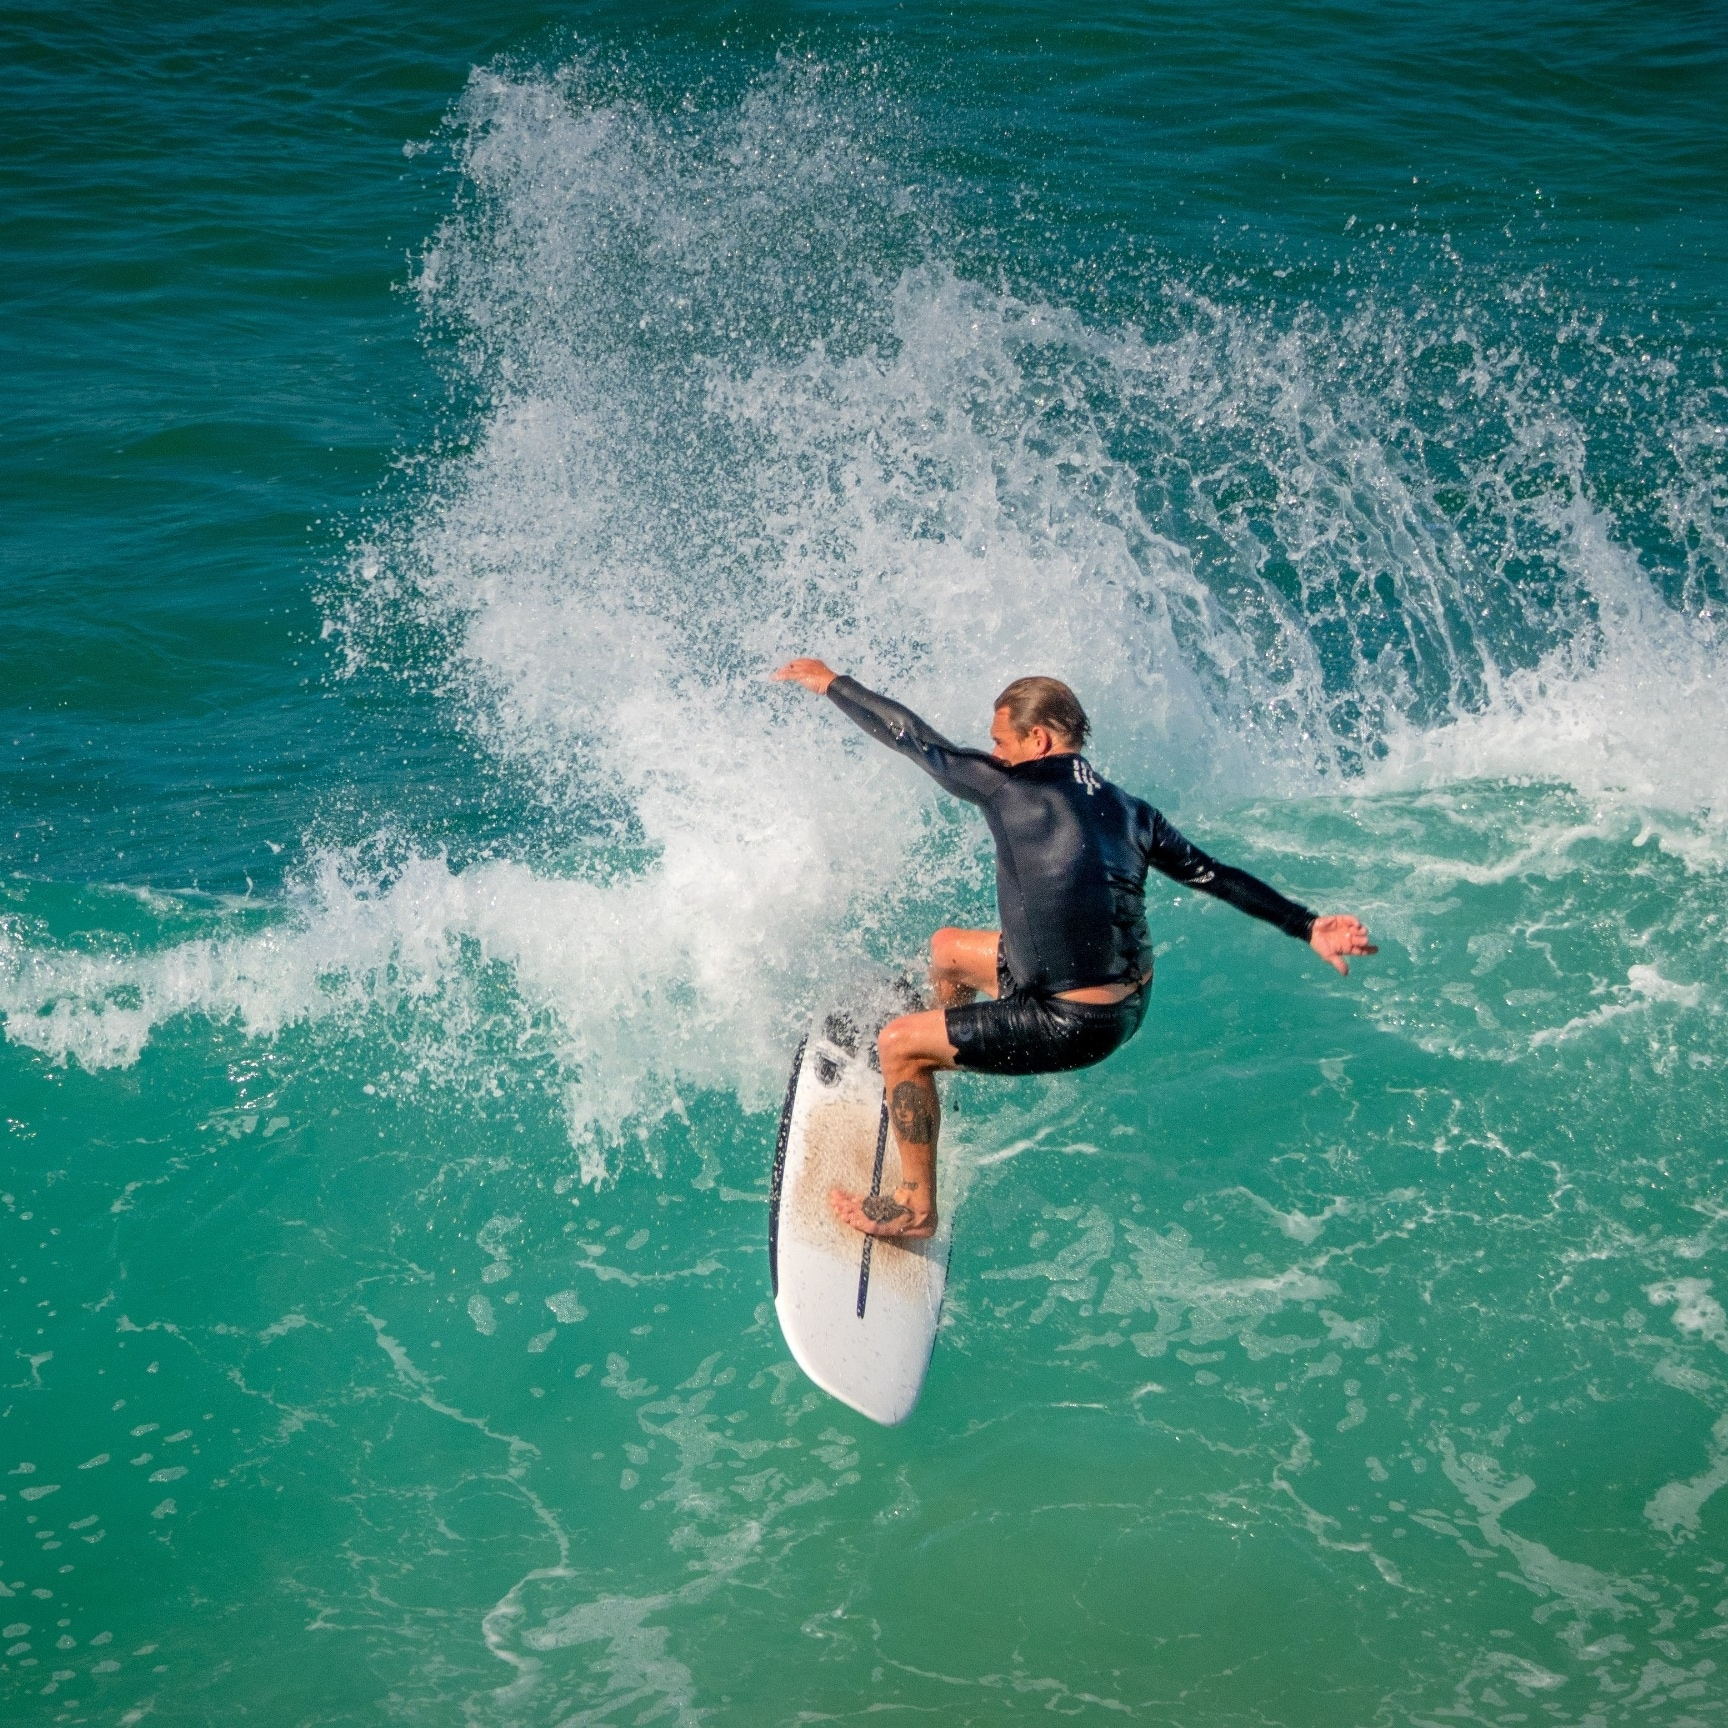 Surfer on the Gold Coast, QLD © Tourism Australia